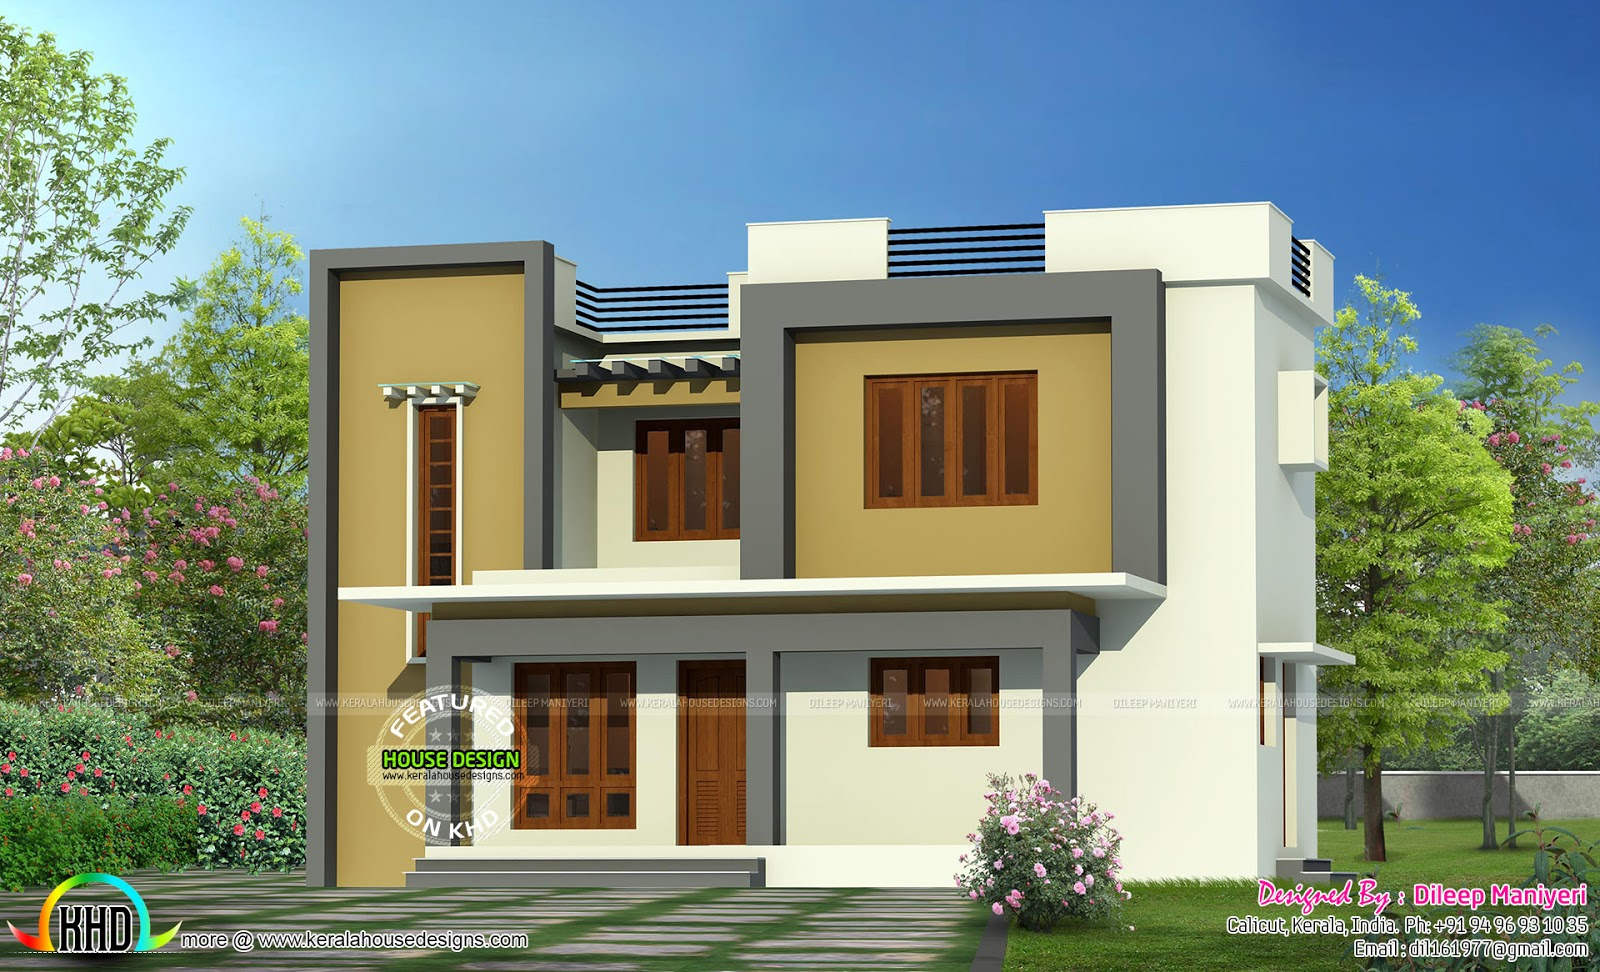 Simple flat roof home architecture kerala home design for Minimalist house design kerala